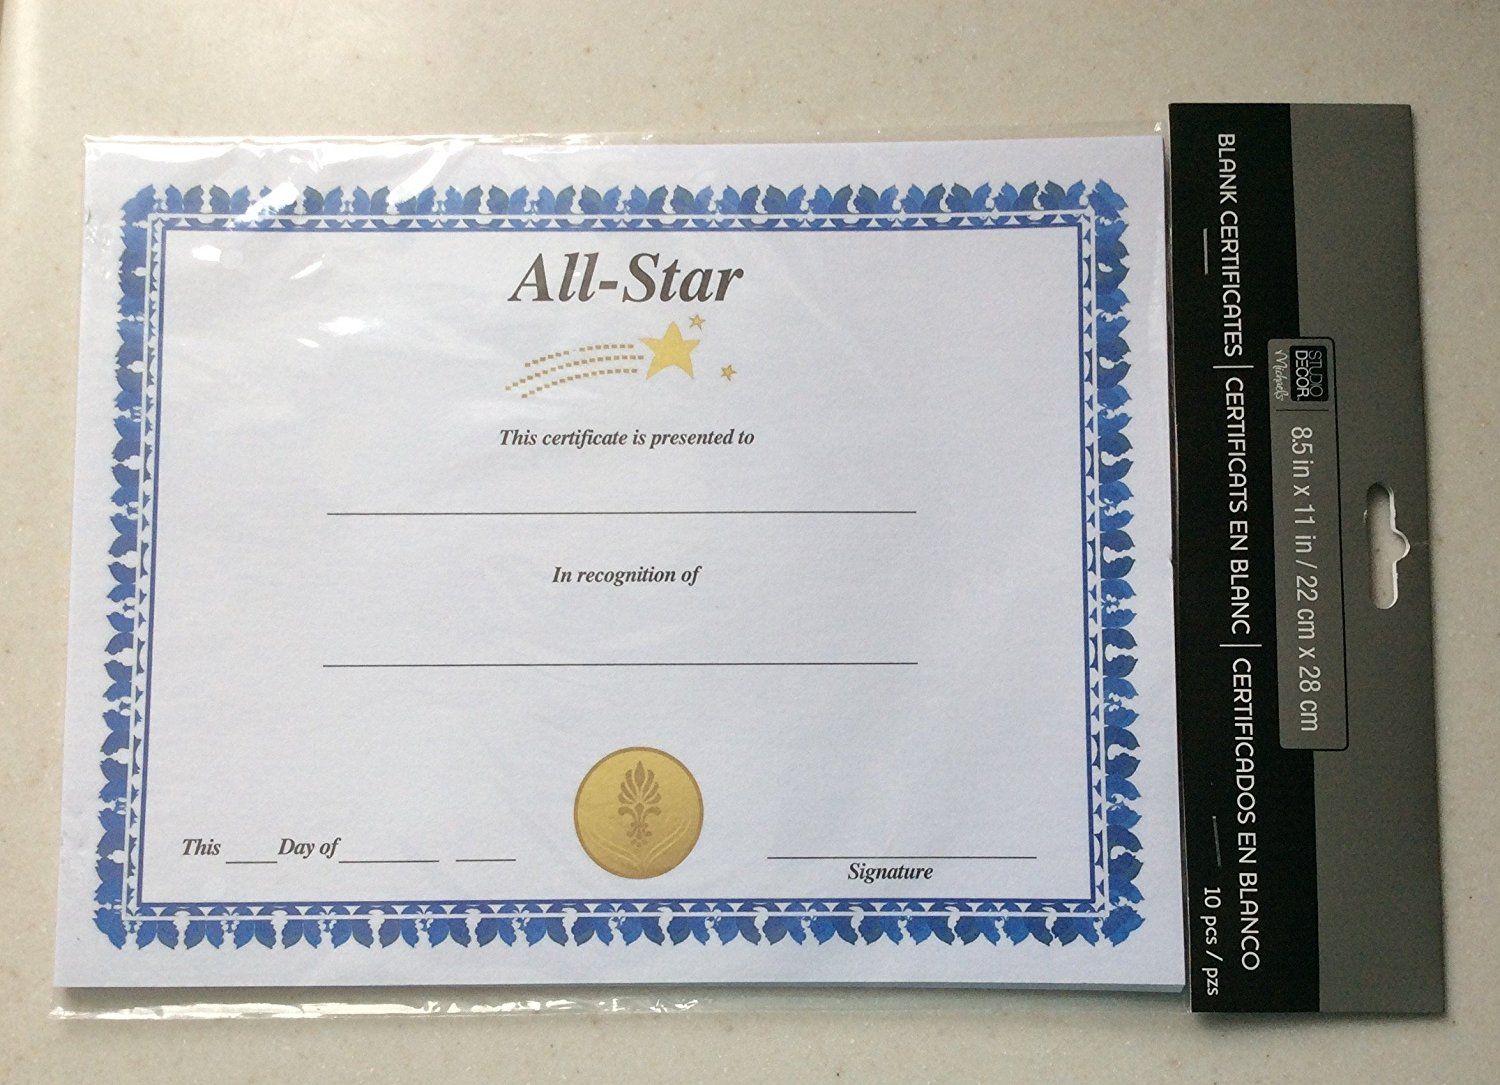 Cheap blank certificate templates find blank certificate get quotations all star certificate of achievement blank 10 pack 85 x 11 inches yelopaper Image collections